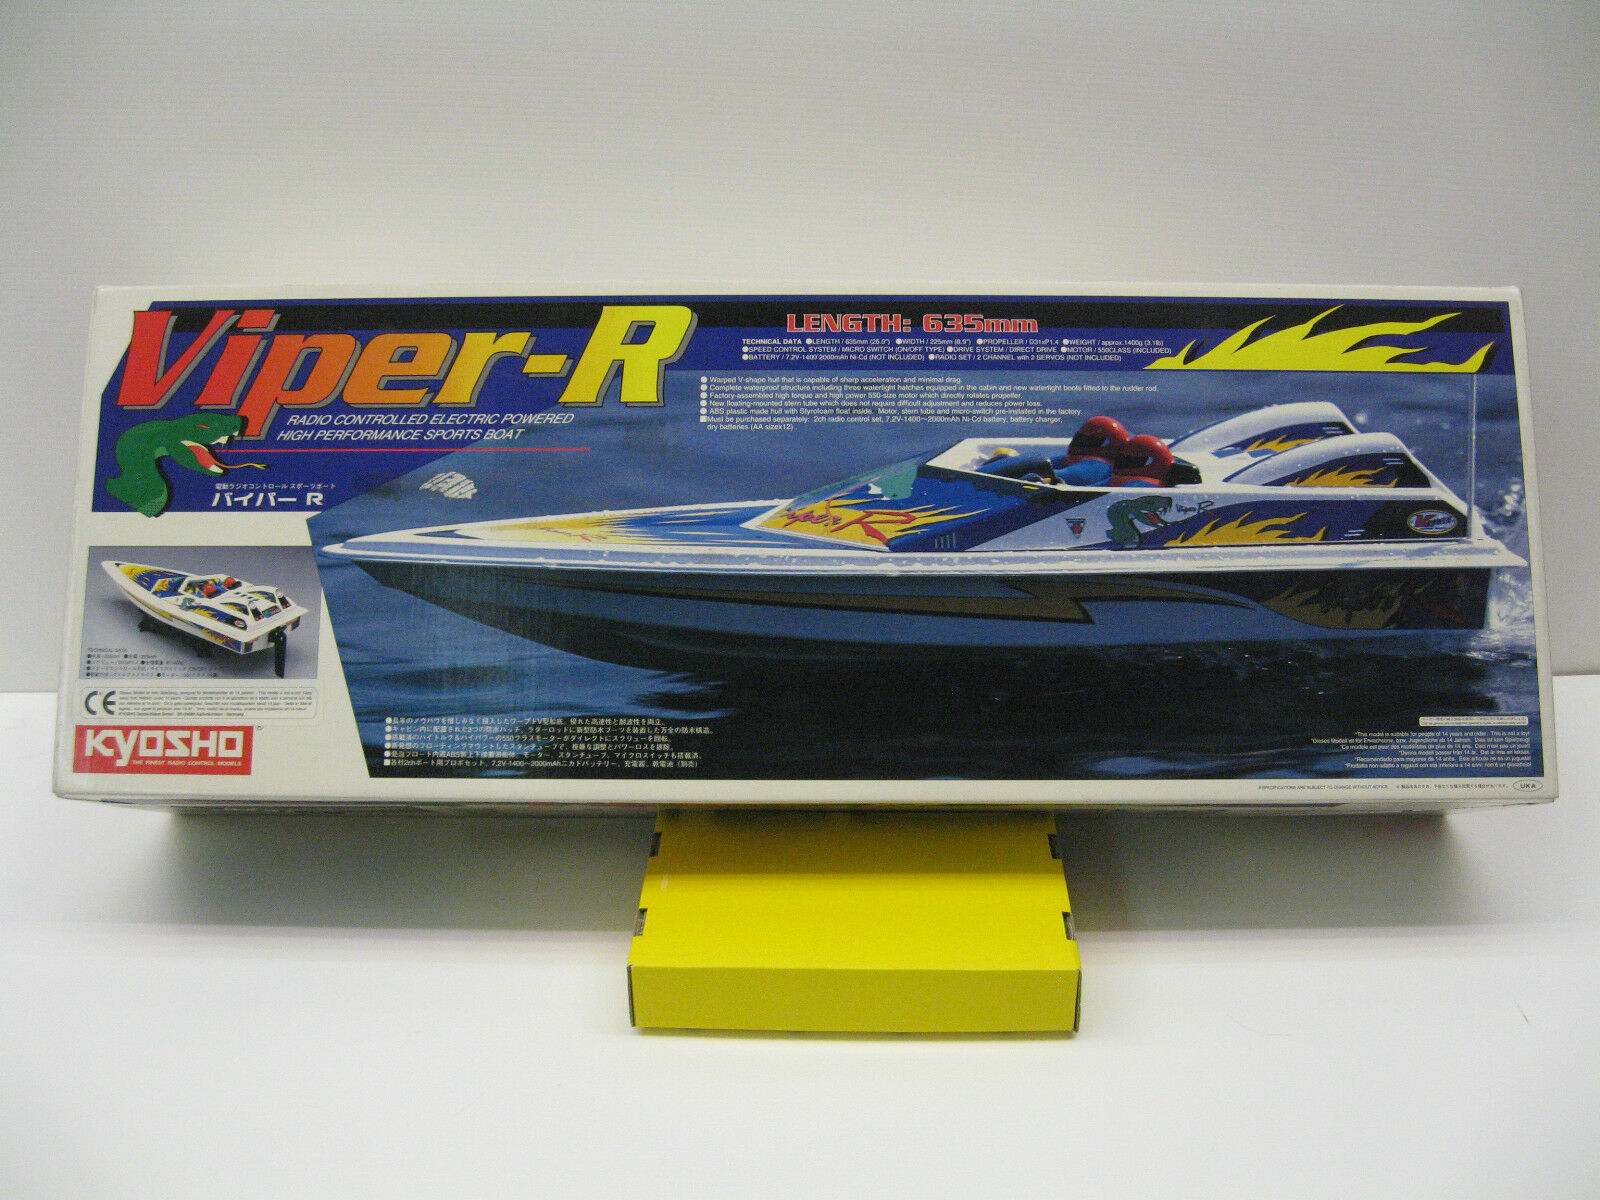 KYOSHO VIPER-R  RADIO CONTROLLED ELETTRIC POWErosso Lung.635mm Art.40751  varie dimensioni